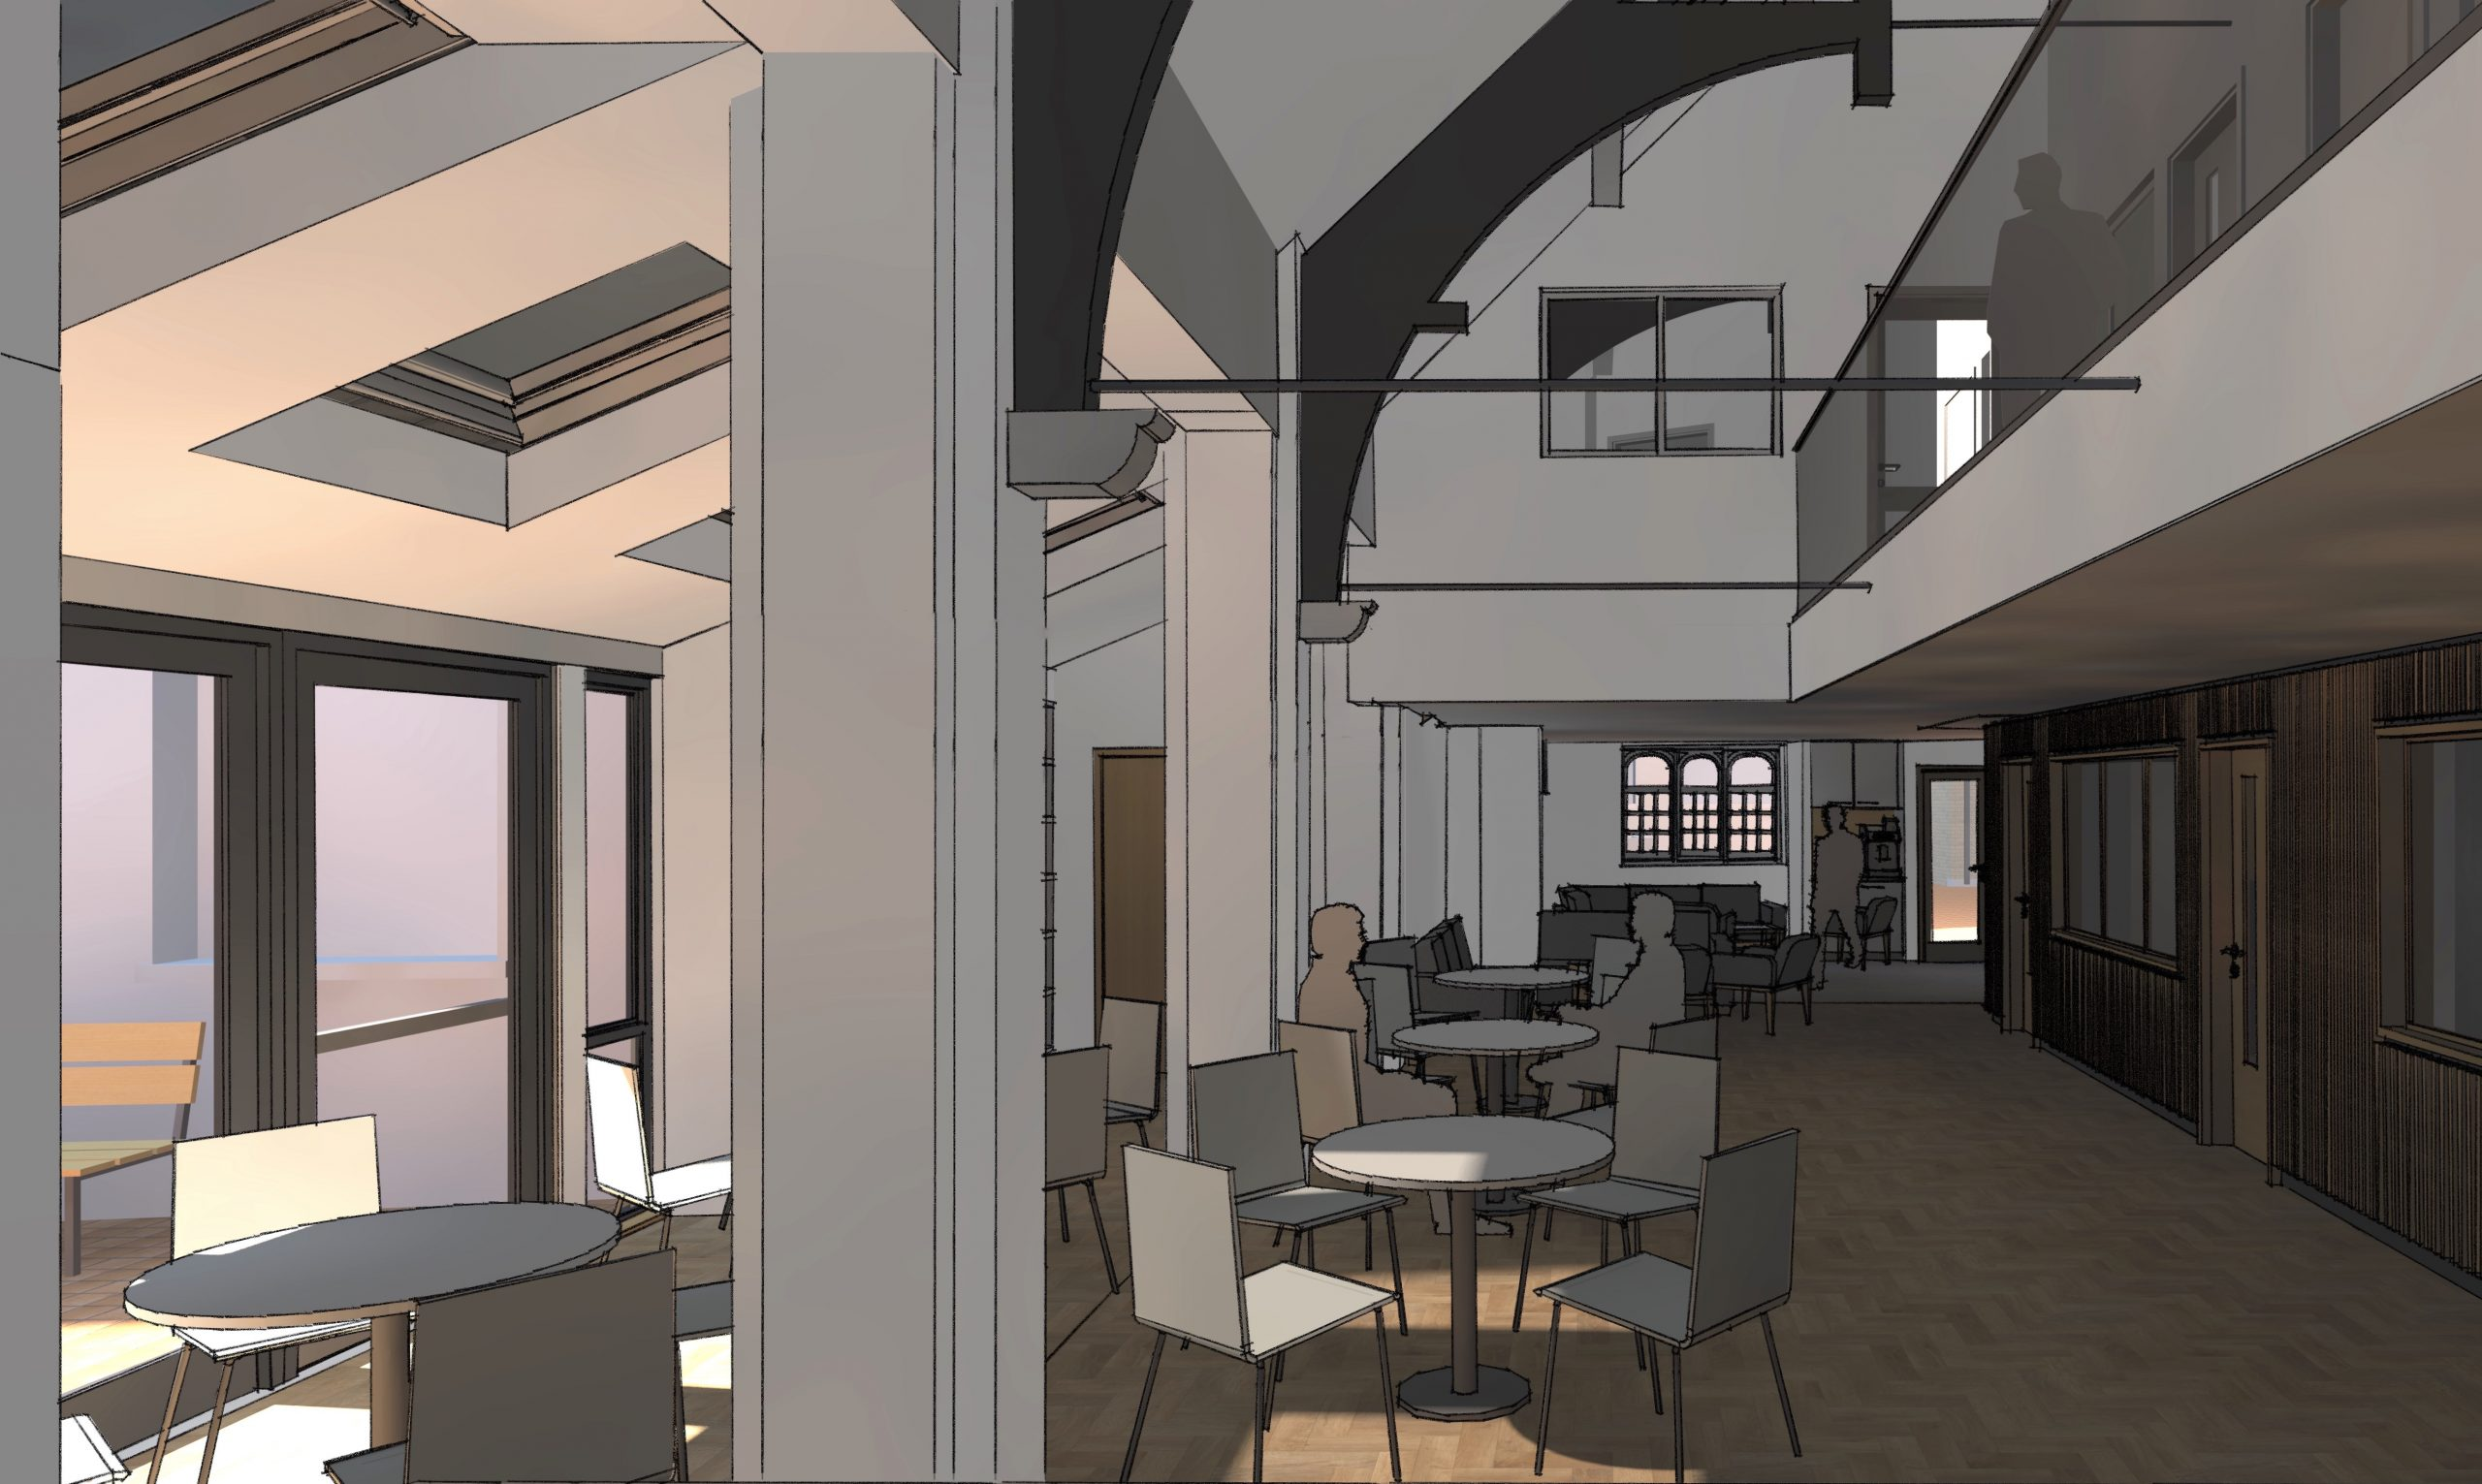 Downing Place URC Church upgrade architect